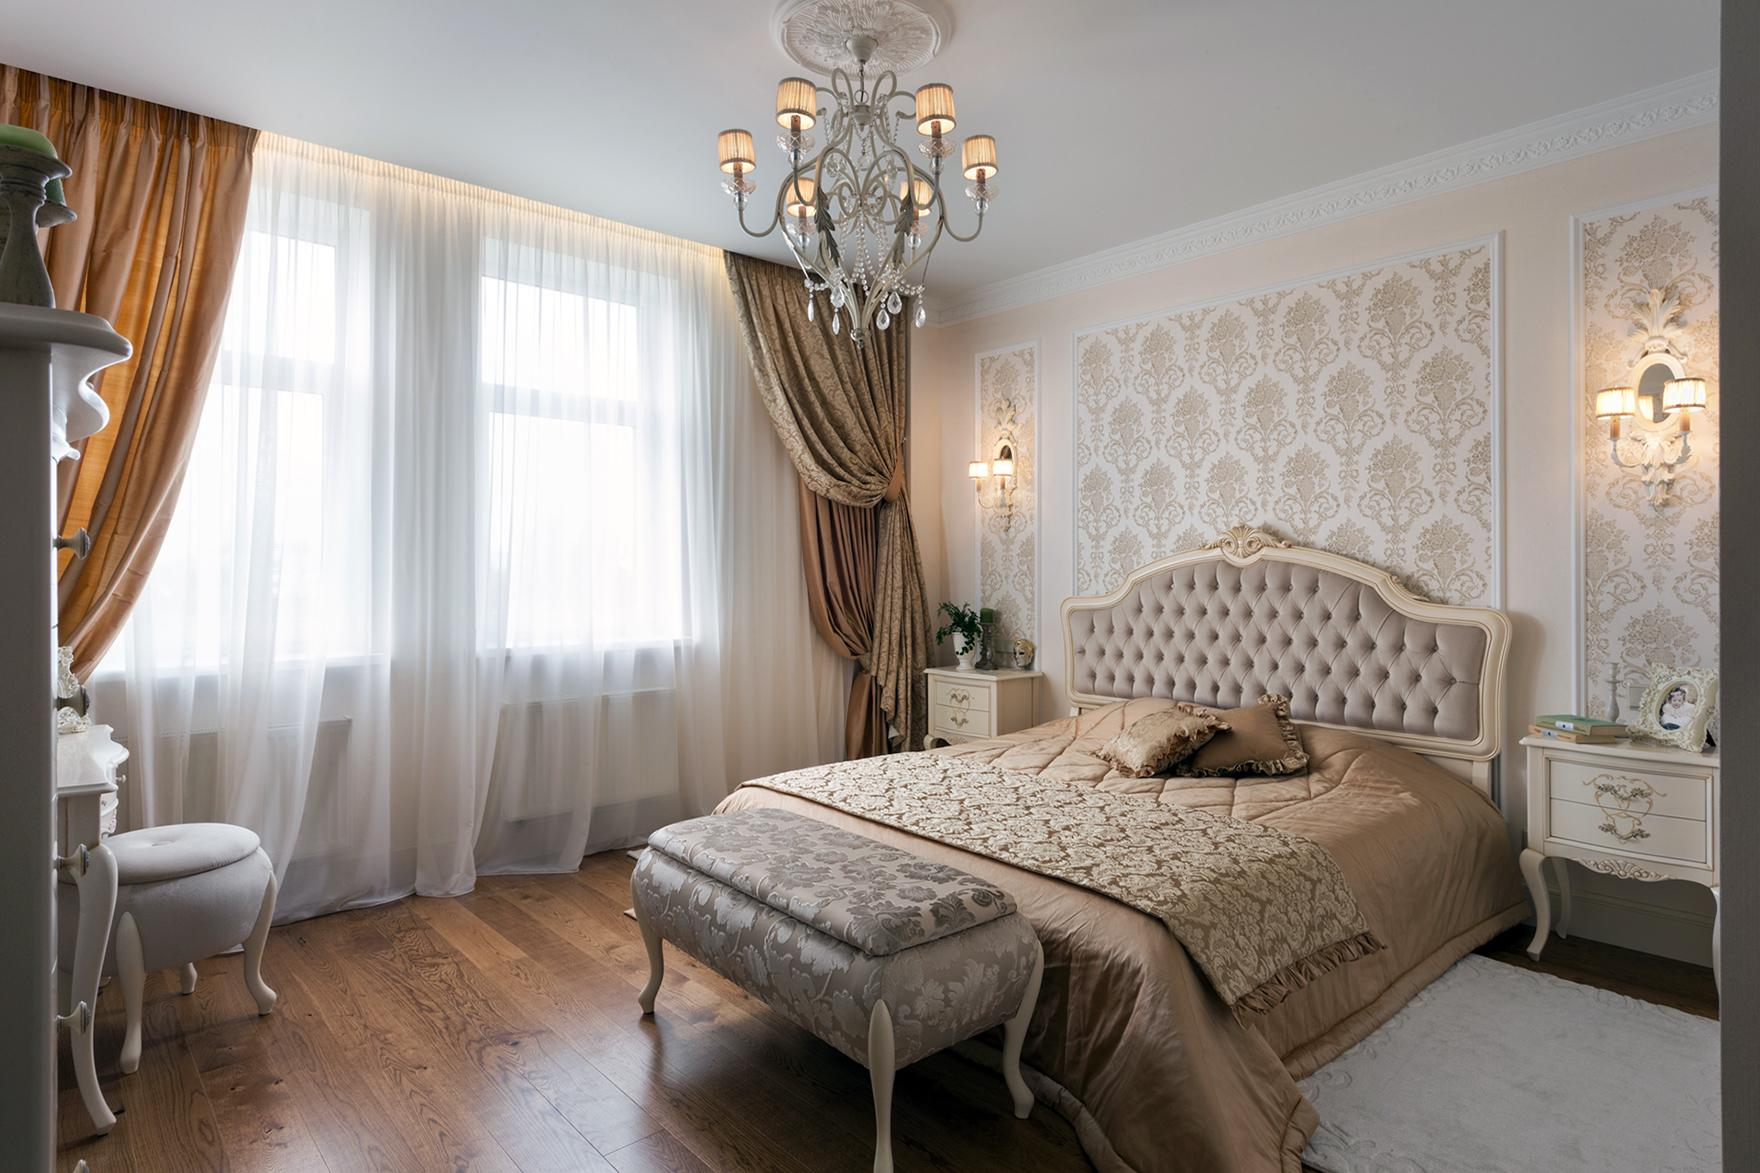 Nicely and simple decorated traditional bedroom with the ottoman